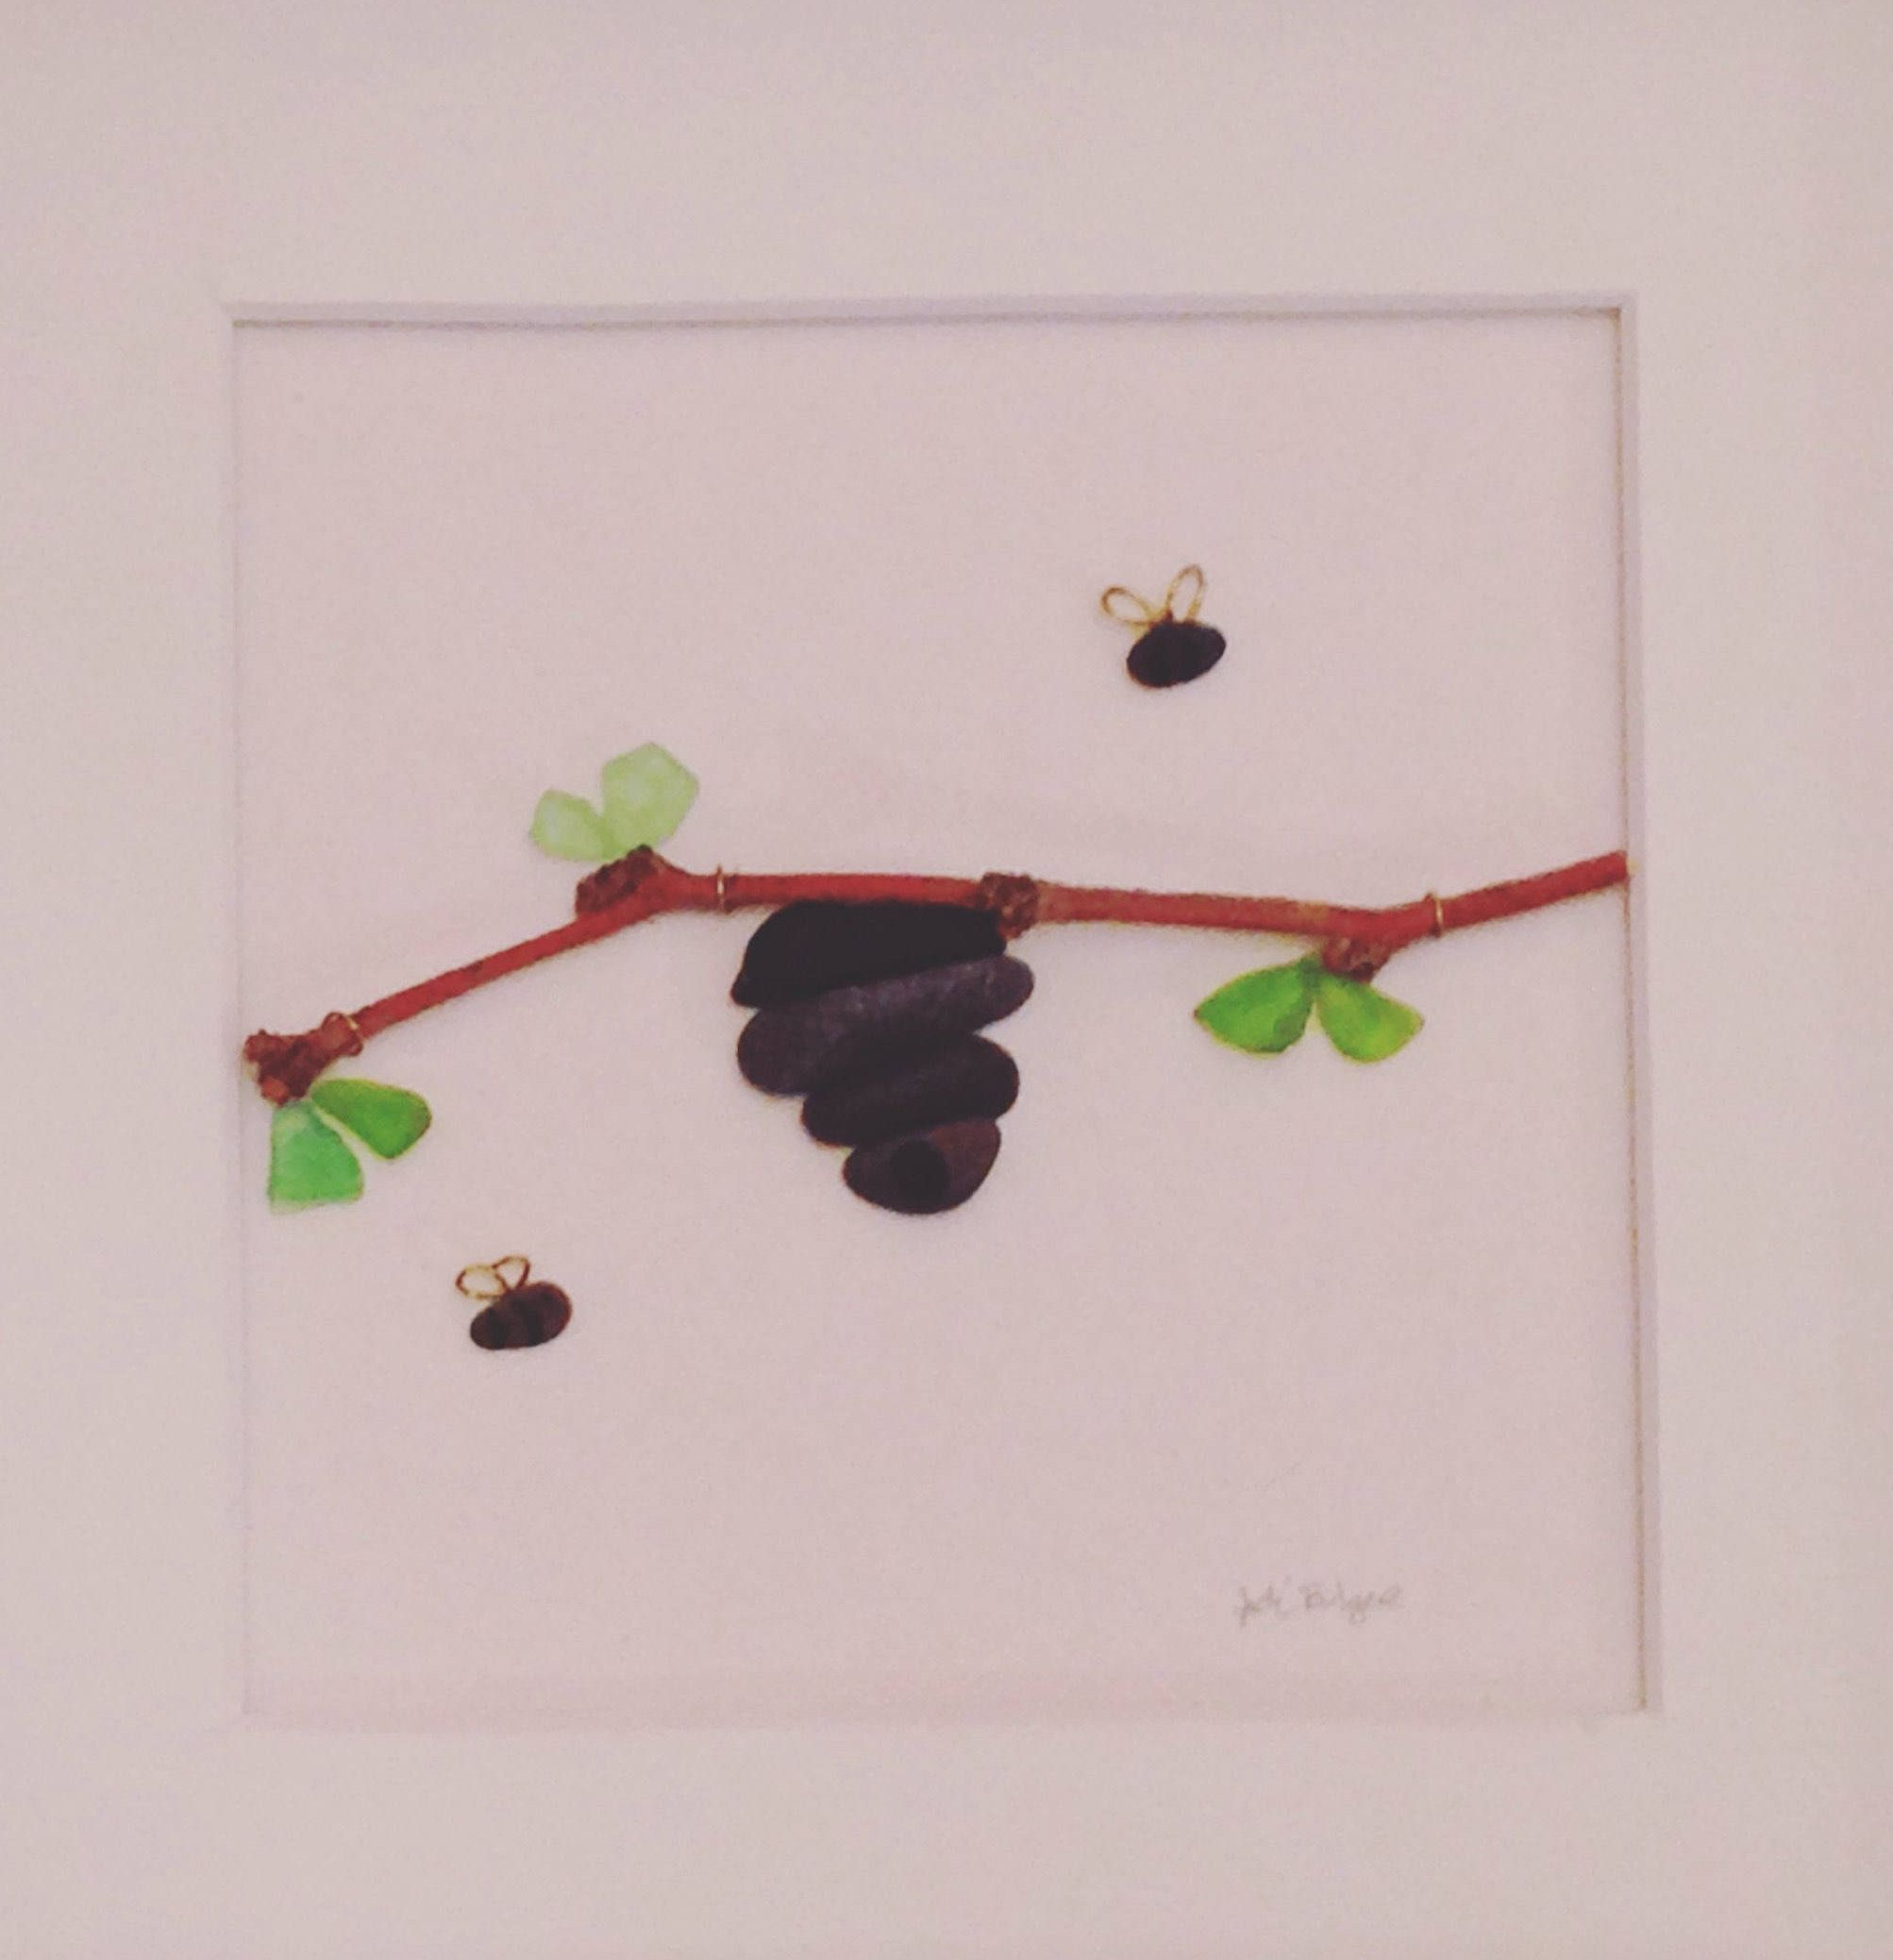 8 x 8 Framed Pebble Art Picture, Original Art for Sale, Bee Hive ...